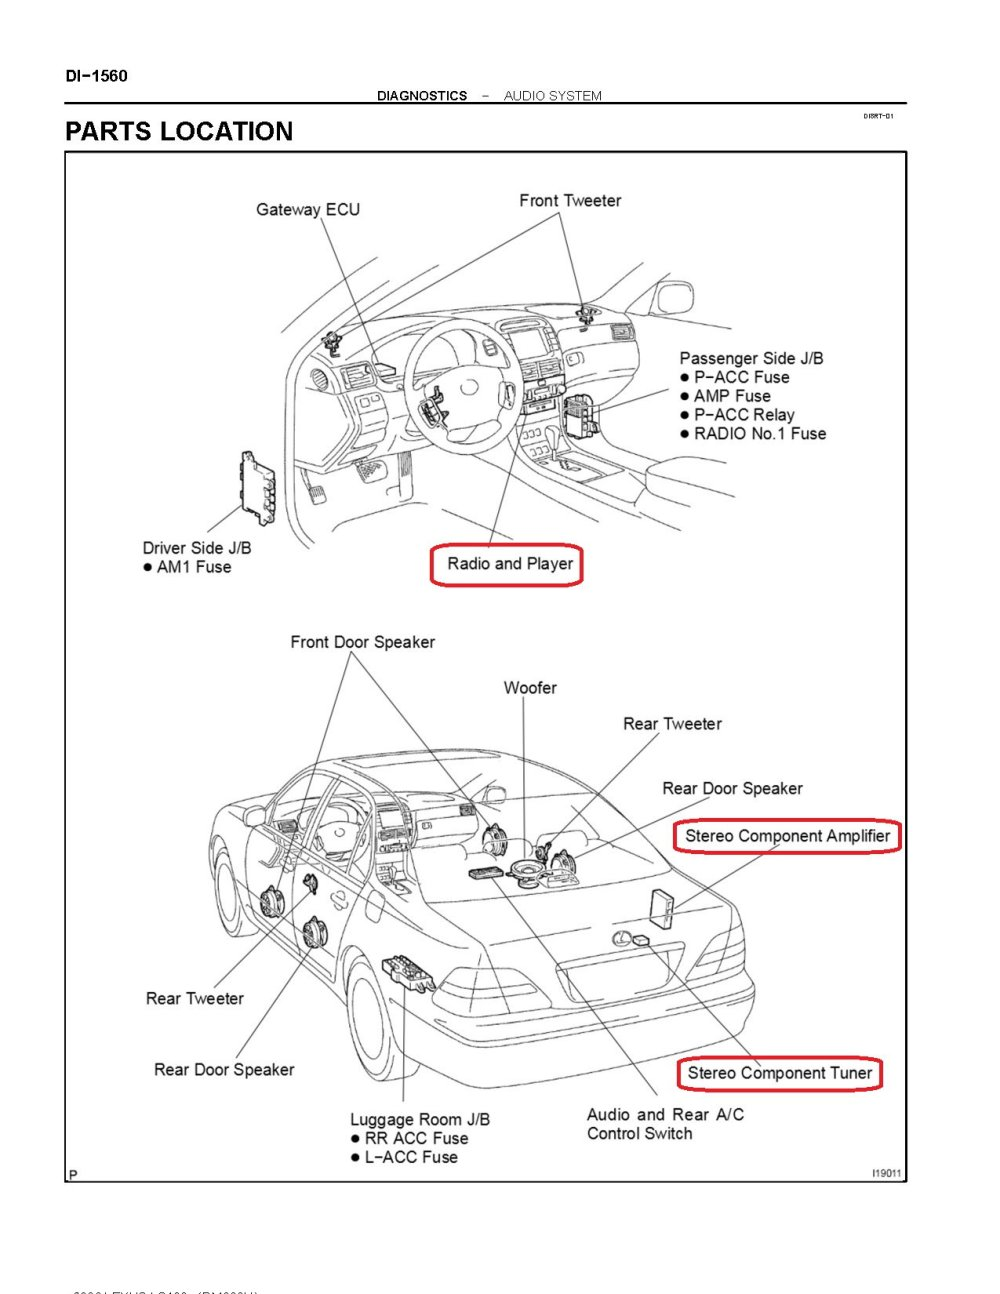 medium resolution of component location diagrams for 2005 lexus is300 automobiles new component location diagrams for 2005 lexus is300 automobiles